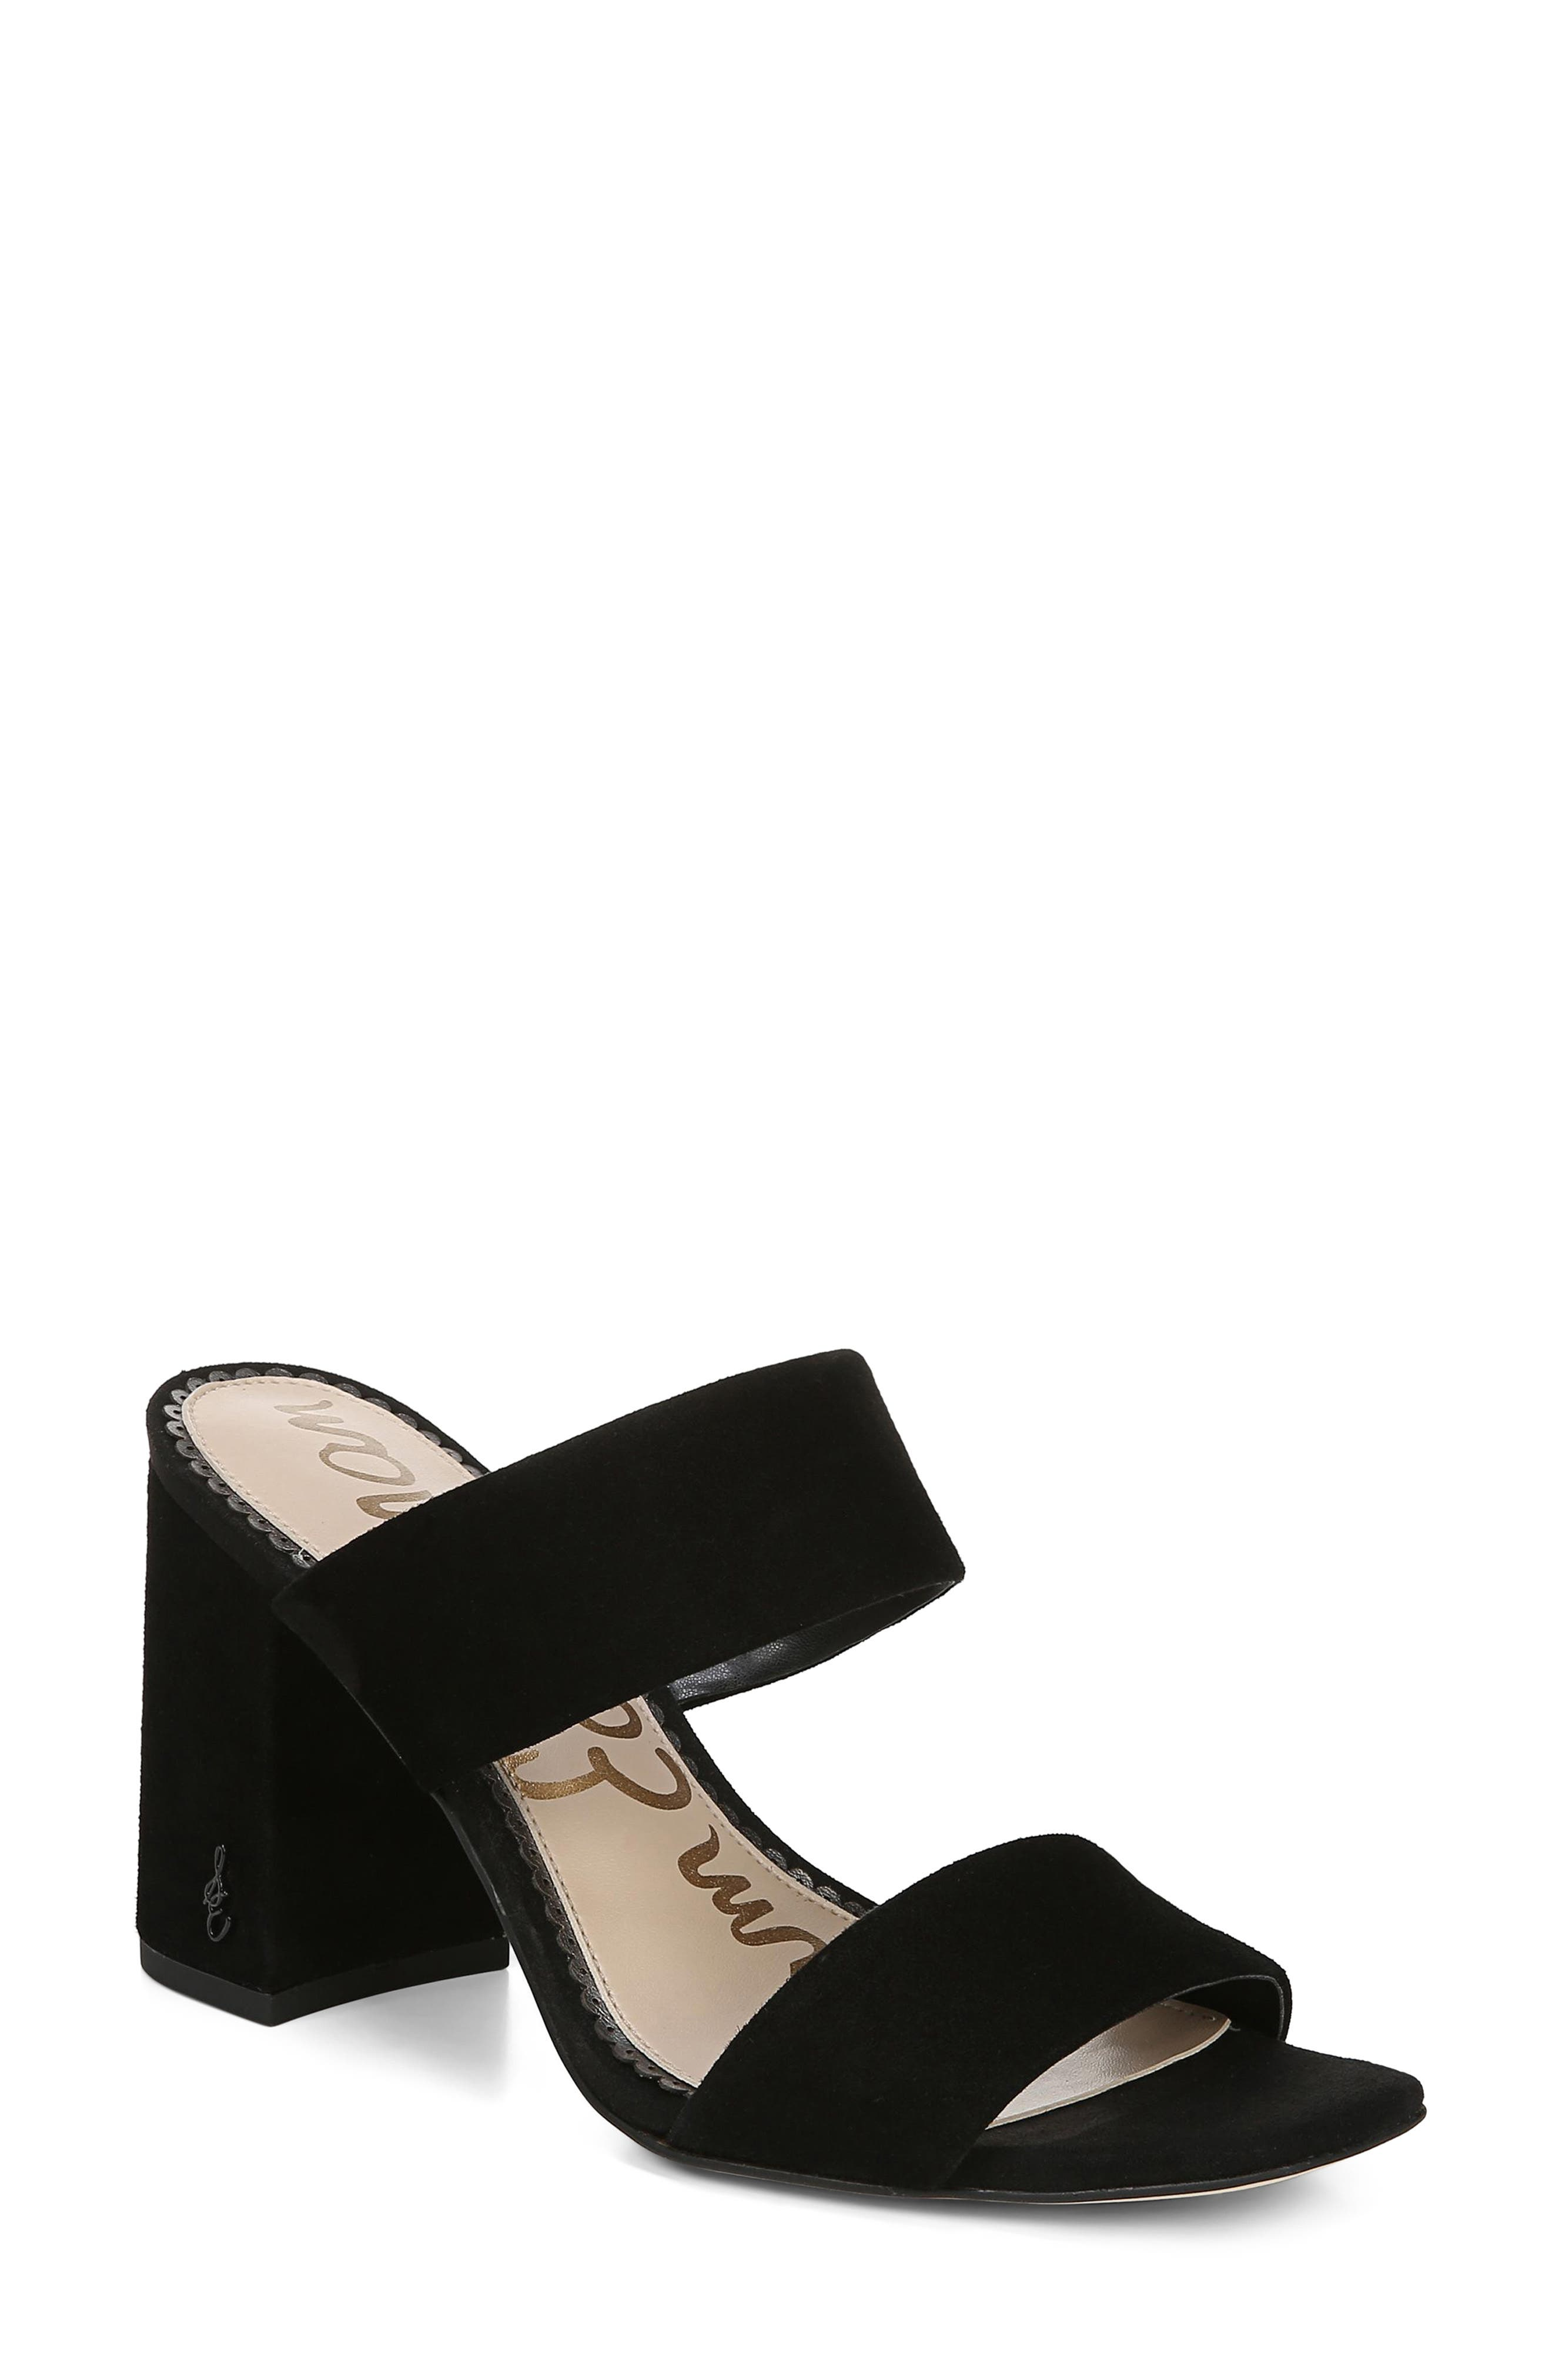 SAM EDELMAN, Delaney Sandal, Main thumbnail 1, color, BLACK SUEDE